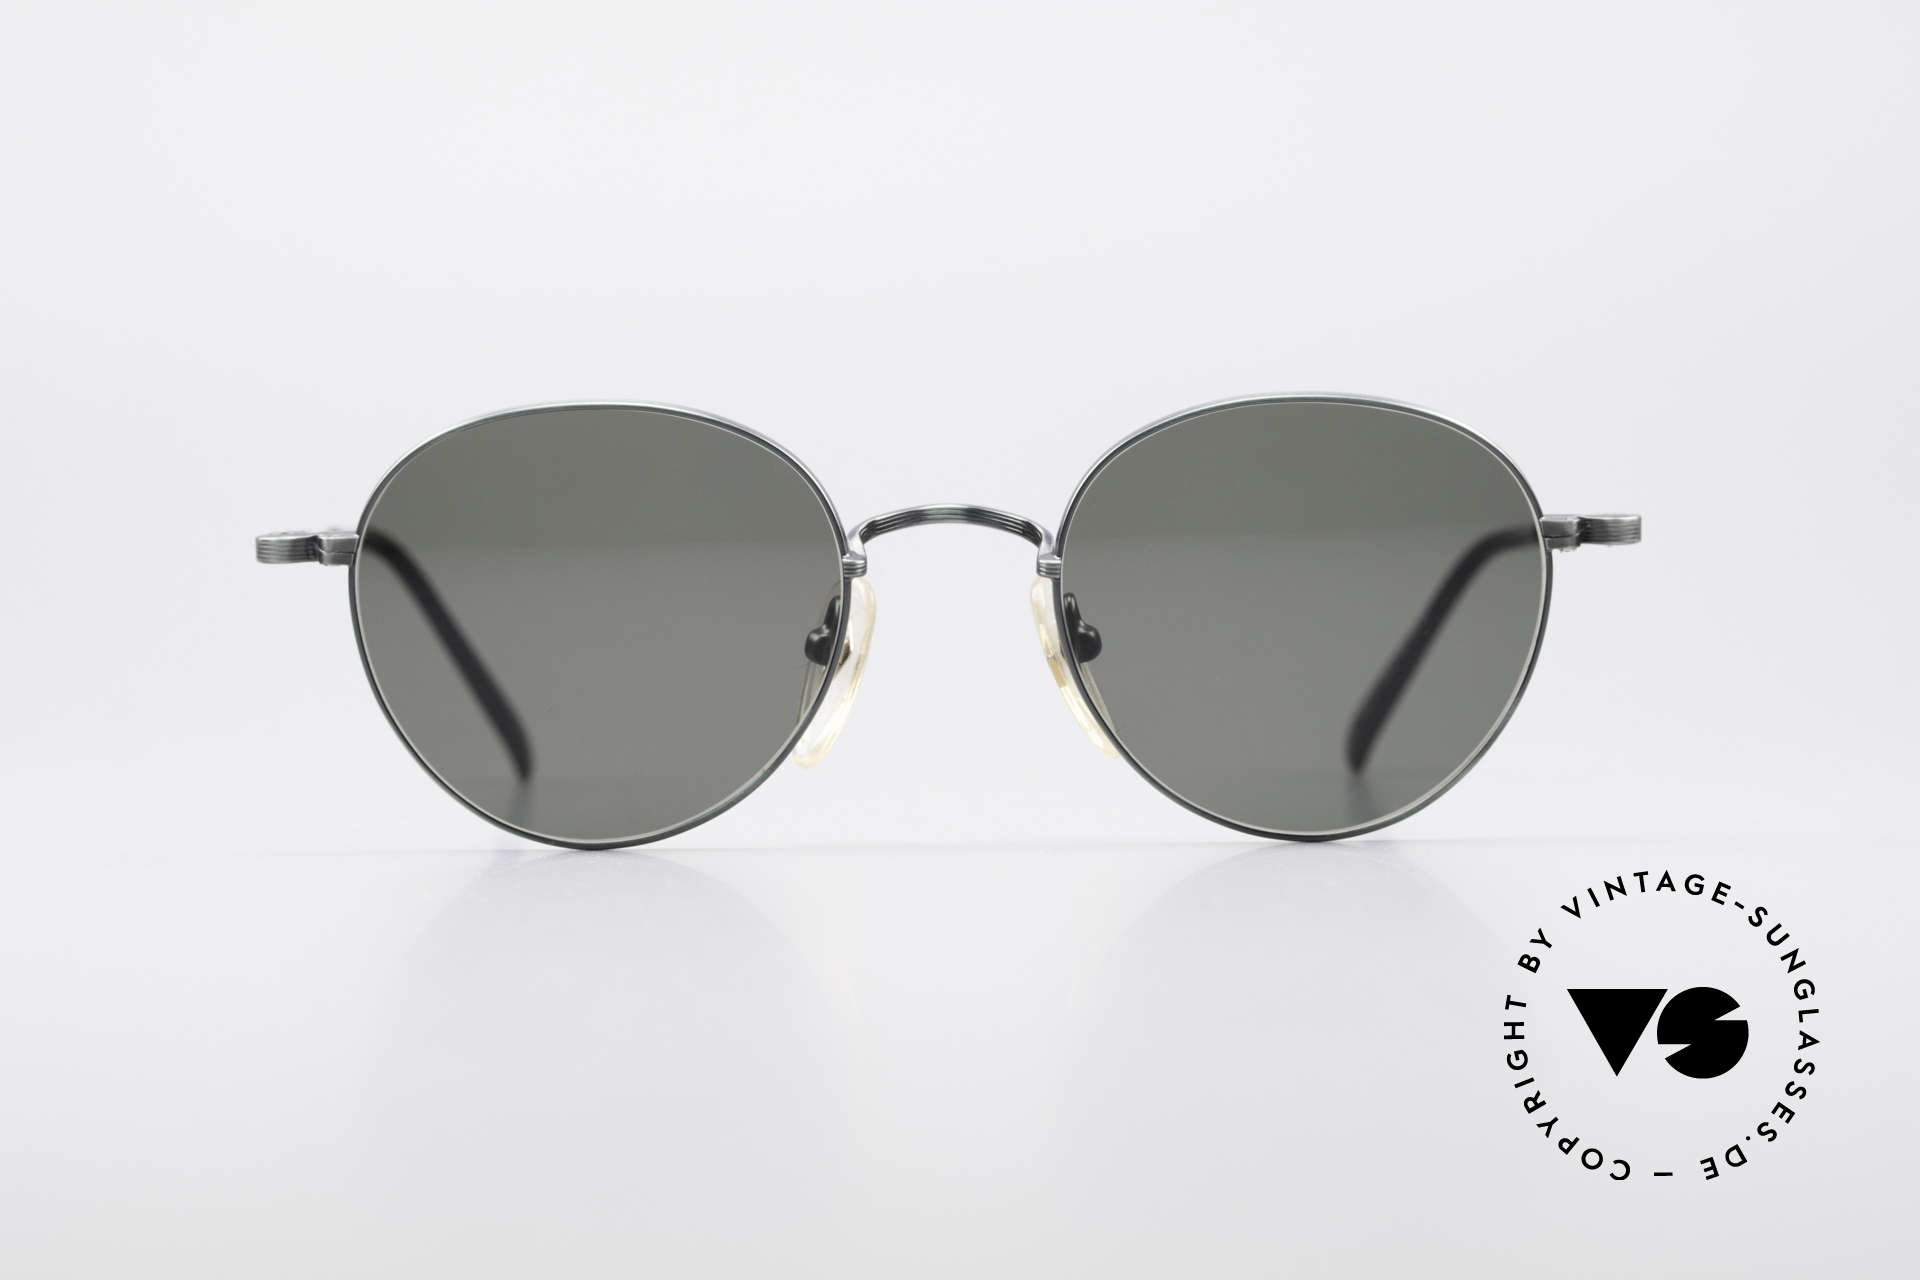 Jean Paul Gaultier 55-1174 Round Vintage Sunglasses, costly, unique frame finish: METALLIC SMOKE GREEN, Made for Men and Women